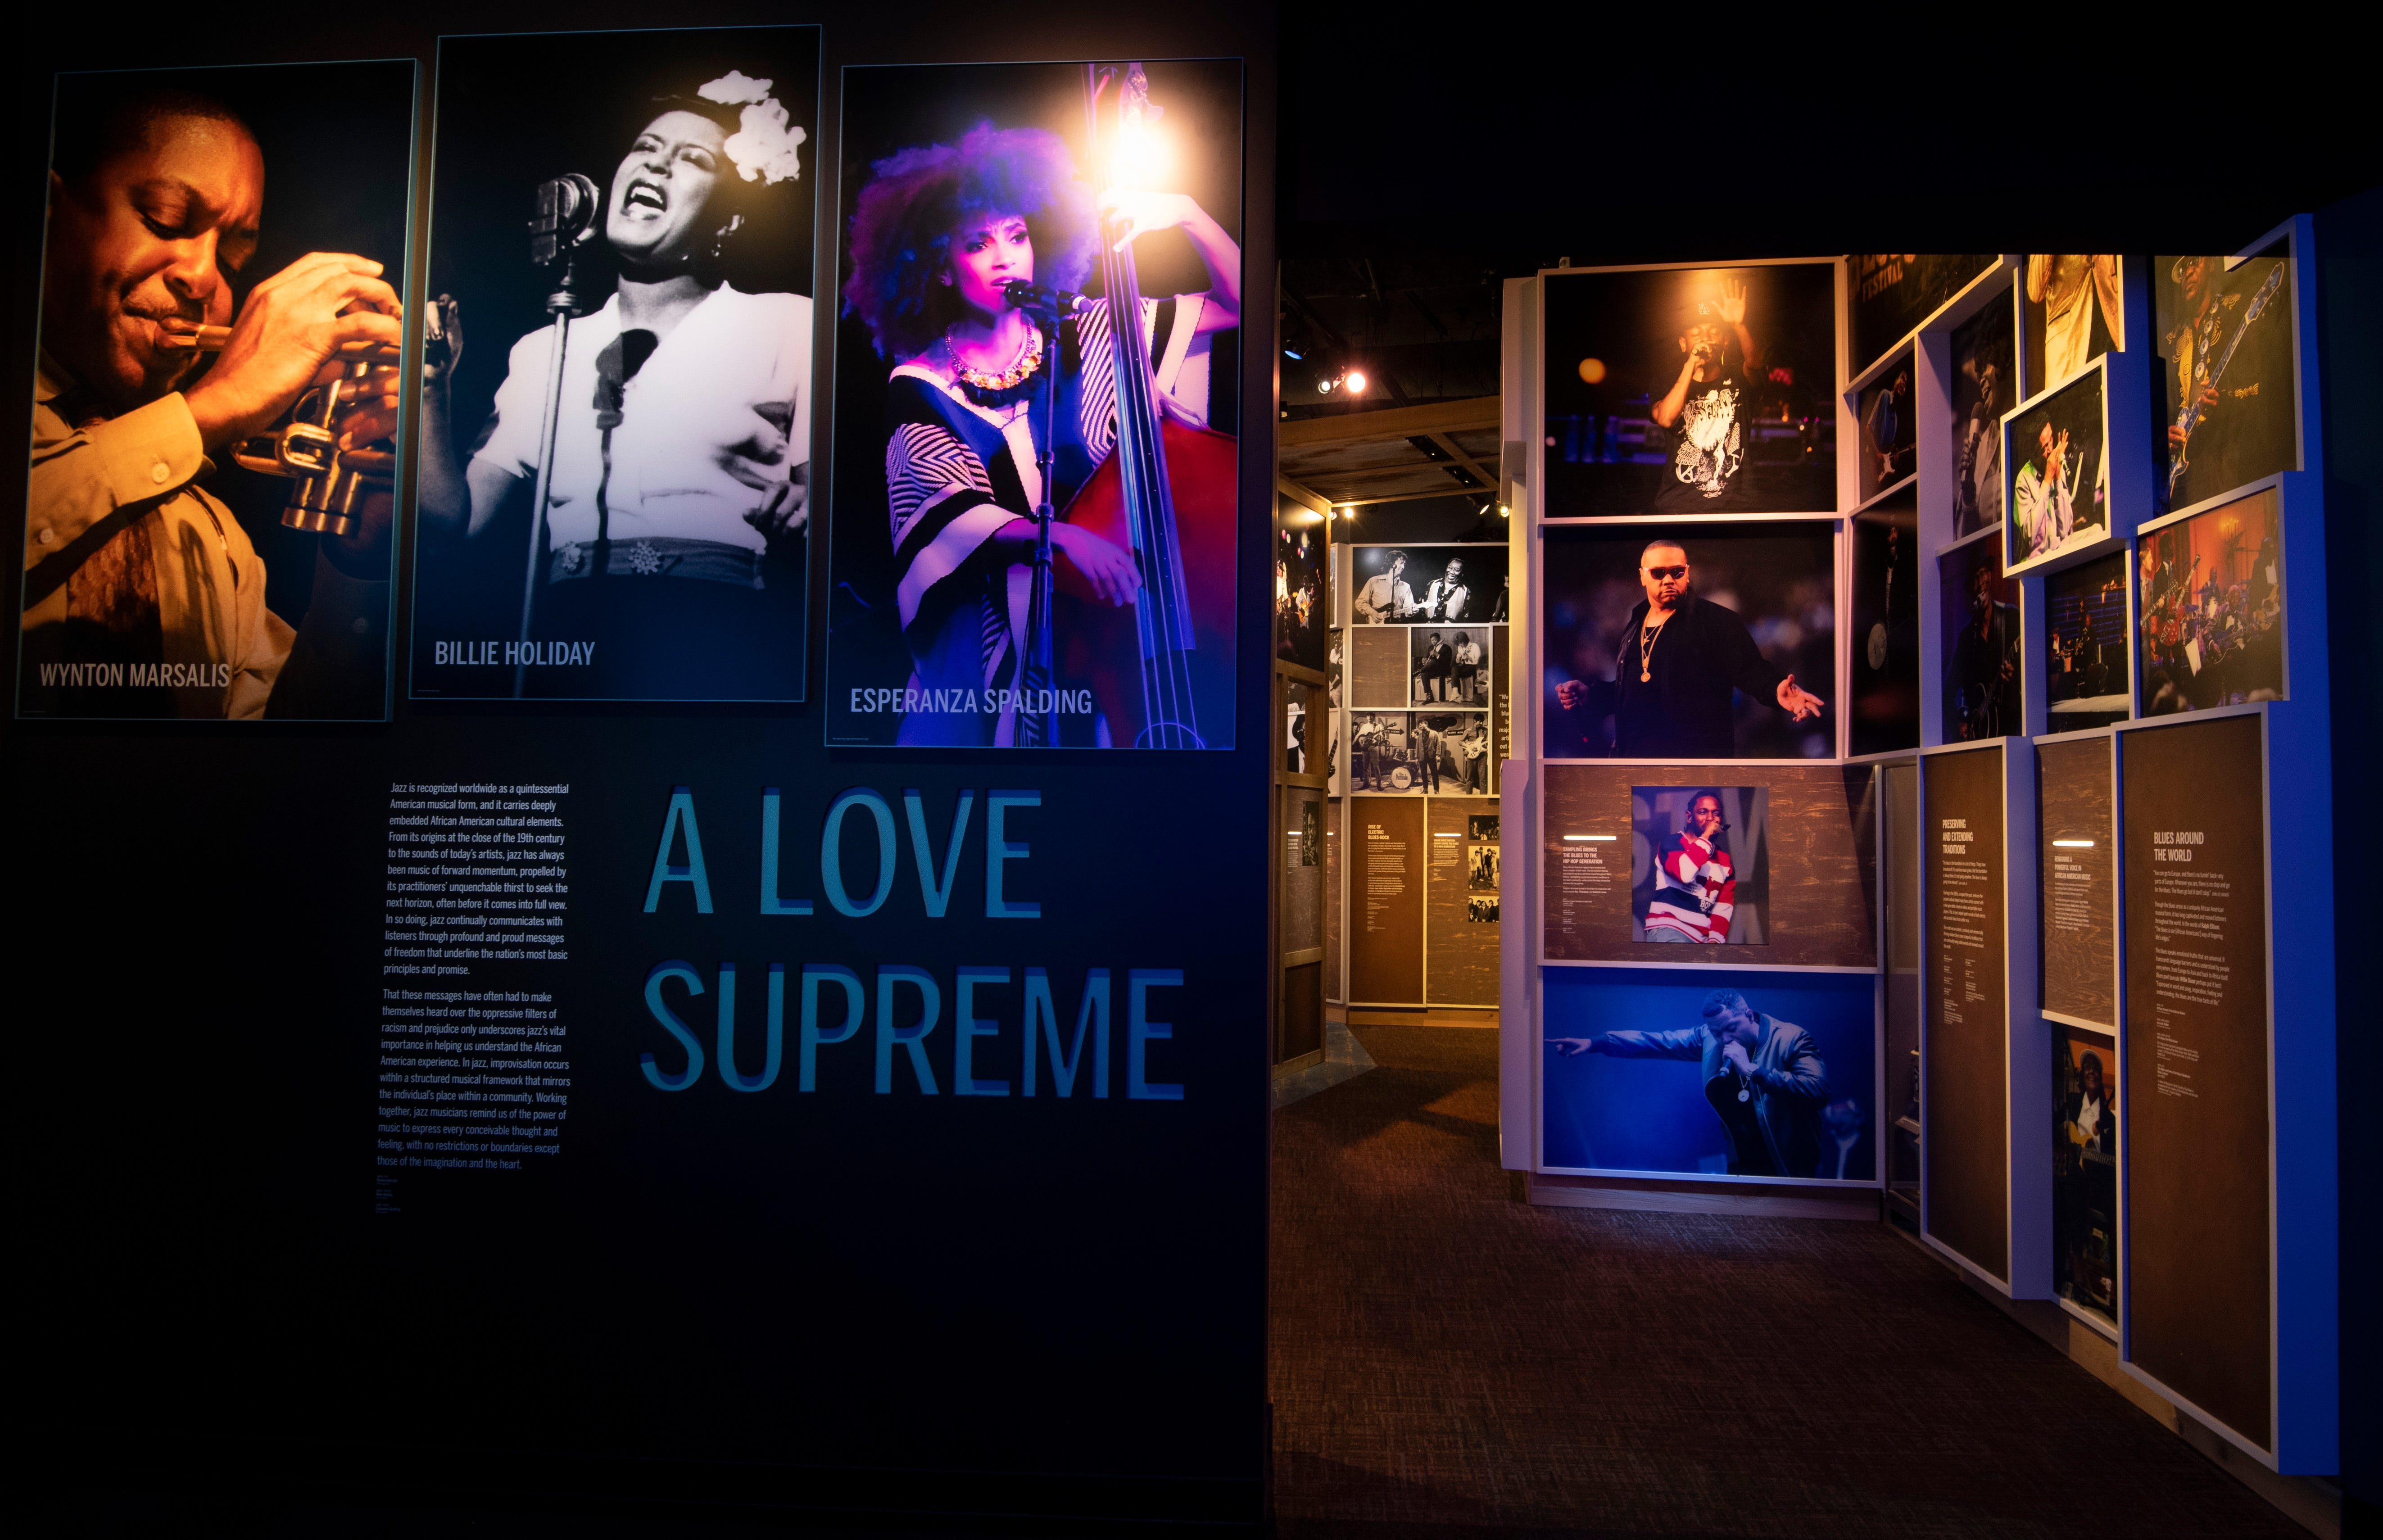 The A Love Supreme gallery celebrates jazz music at the National Museum of African American Music Tuesday, Jan. 12, 2021 in Nashville, Tenn. Visitors will be able to enjoy the museum when it opens to the public in late January.